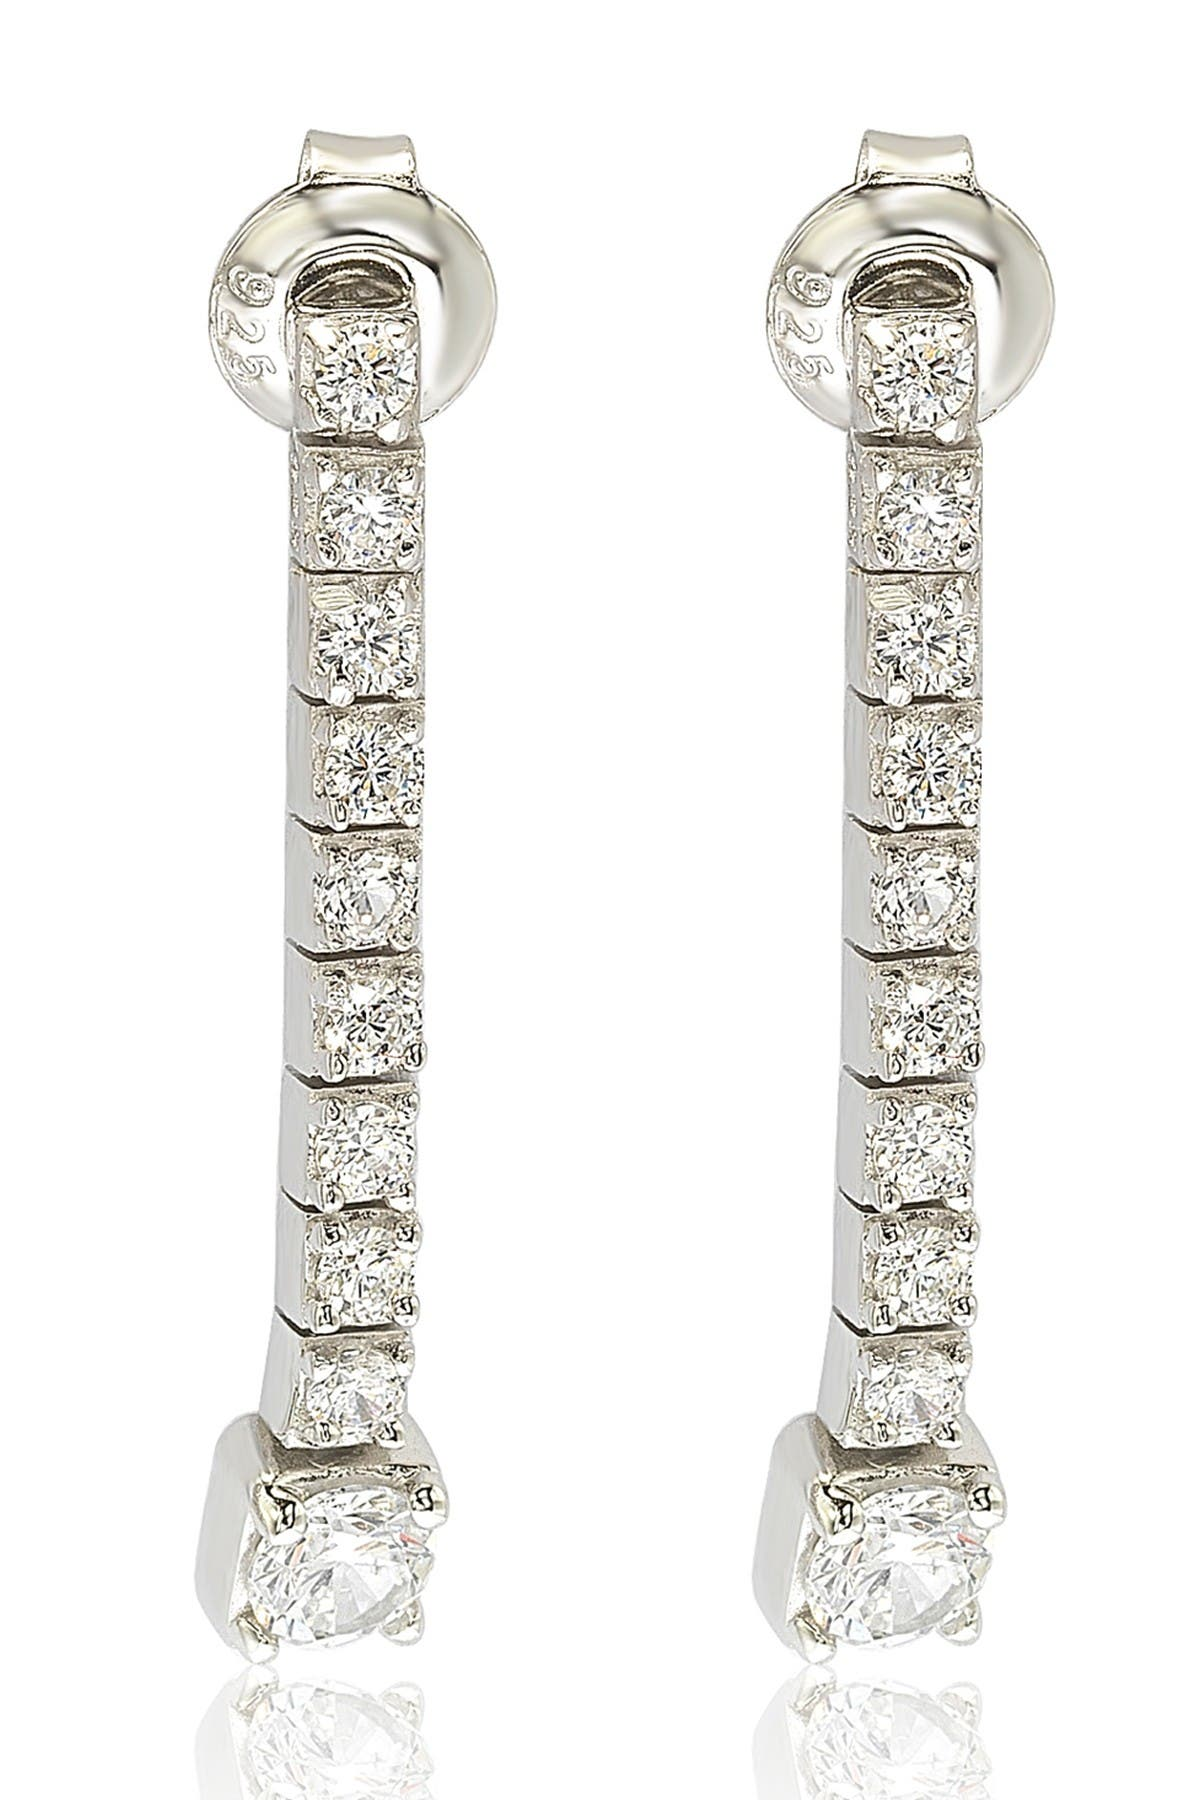 Image of Suzy Levian Sterling Silver A Touch of Dazzle CZ Drop Earrings